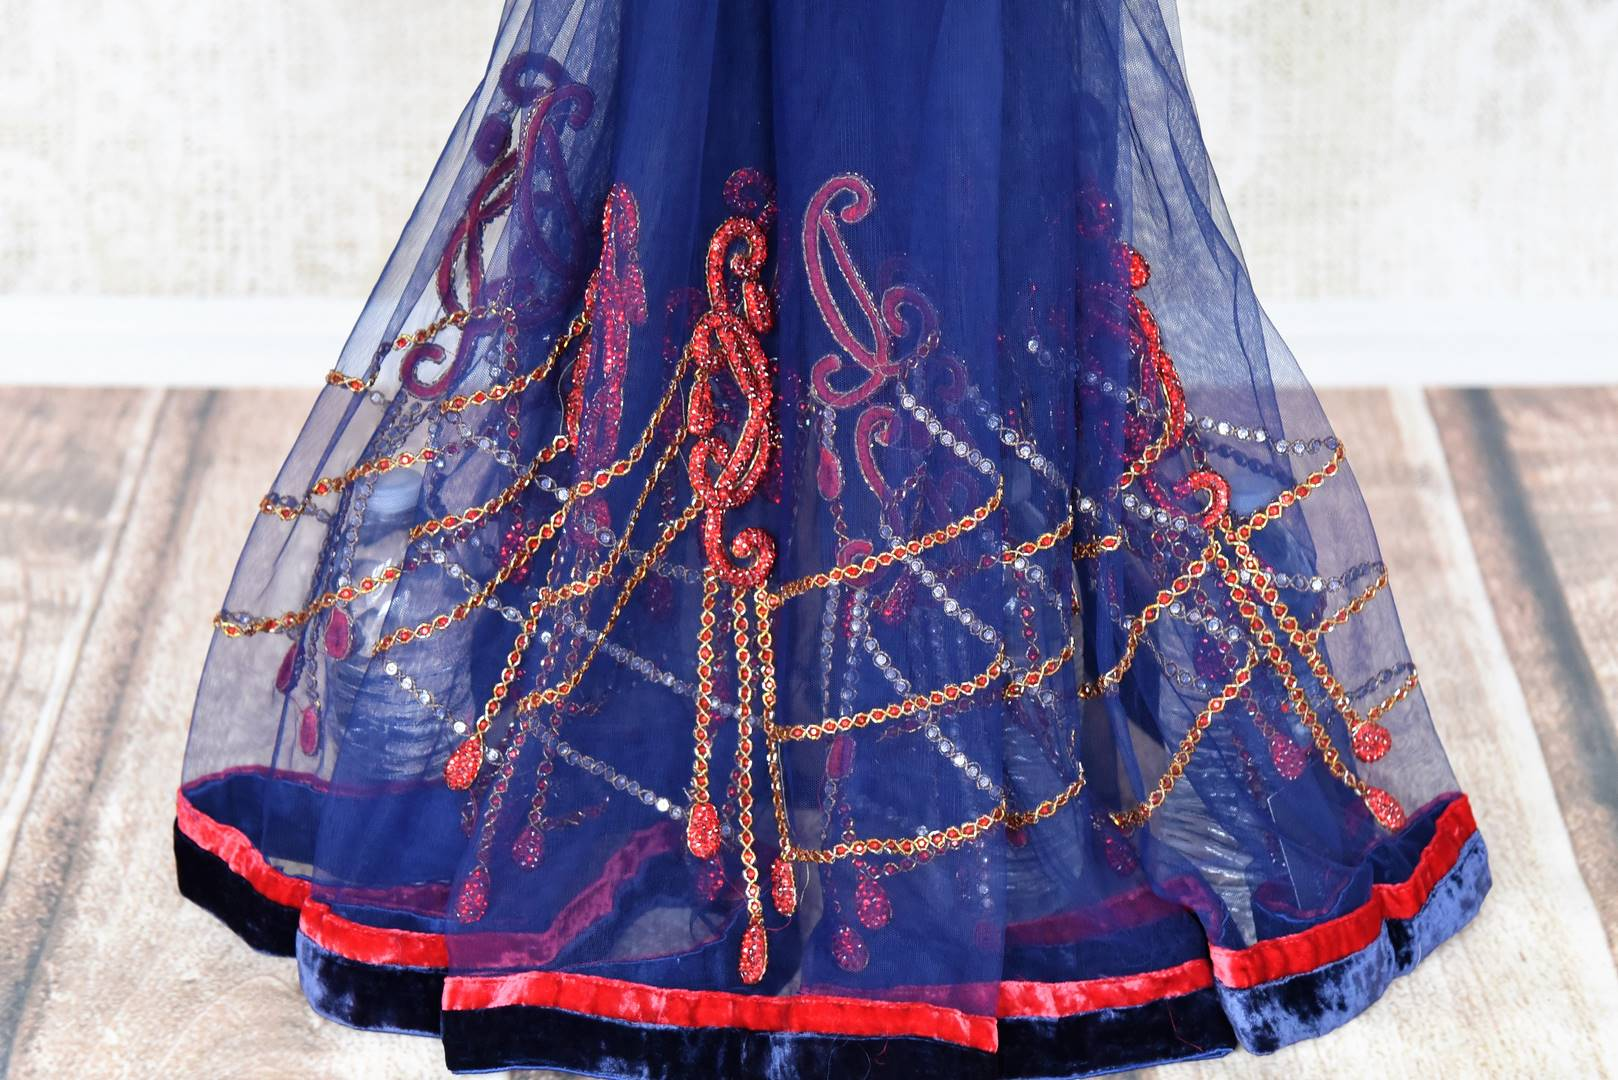 Buy navy blue embroidered fancy net saree with red blouse online in USA from Pure Elegance. Choose from a range of exclusive Indian designer sarees, wedding saris, embroidered sarees in beautiful styles and designs from our Indian fashion store in USA and flaunt your tasteful sartorial choices on special occasions.-pleats